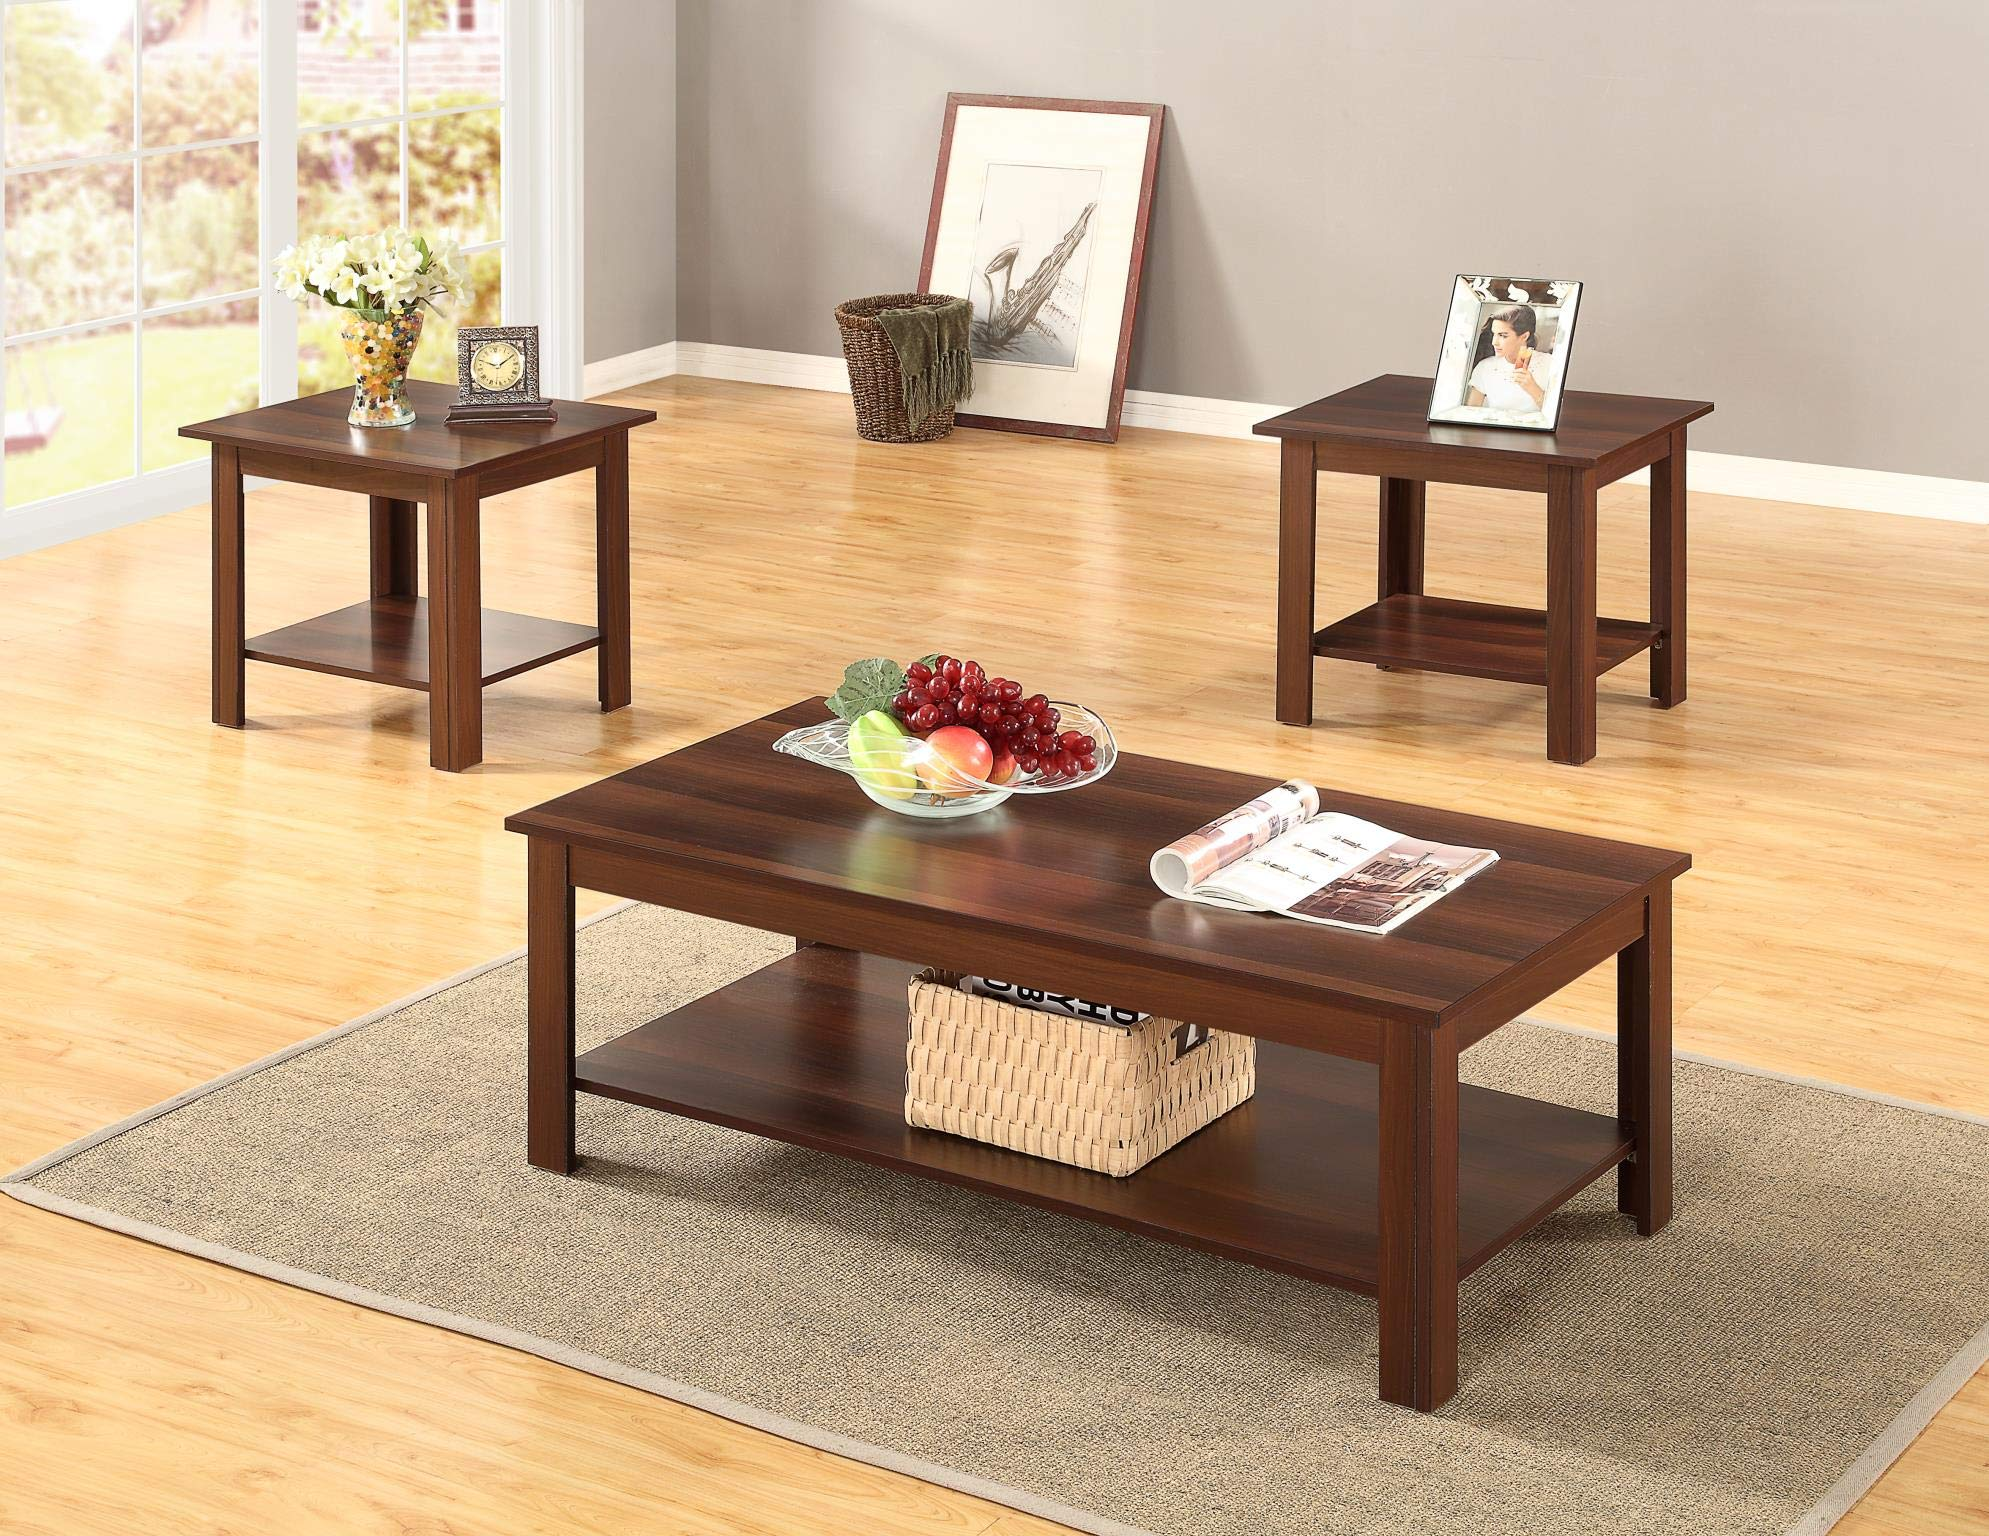 GTU Furniture Occassional Modern, Contemporary, Transitional, Traditional, 3-Piece Square Accent Table Set with 1 Coffee Table, and 2 End Tables in a Rich Dark Oak Brown Wood Finish, with Storage Shel by GTU Furntiure